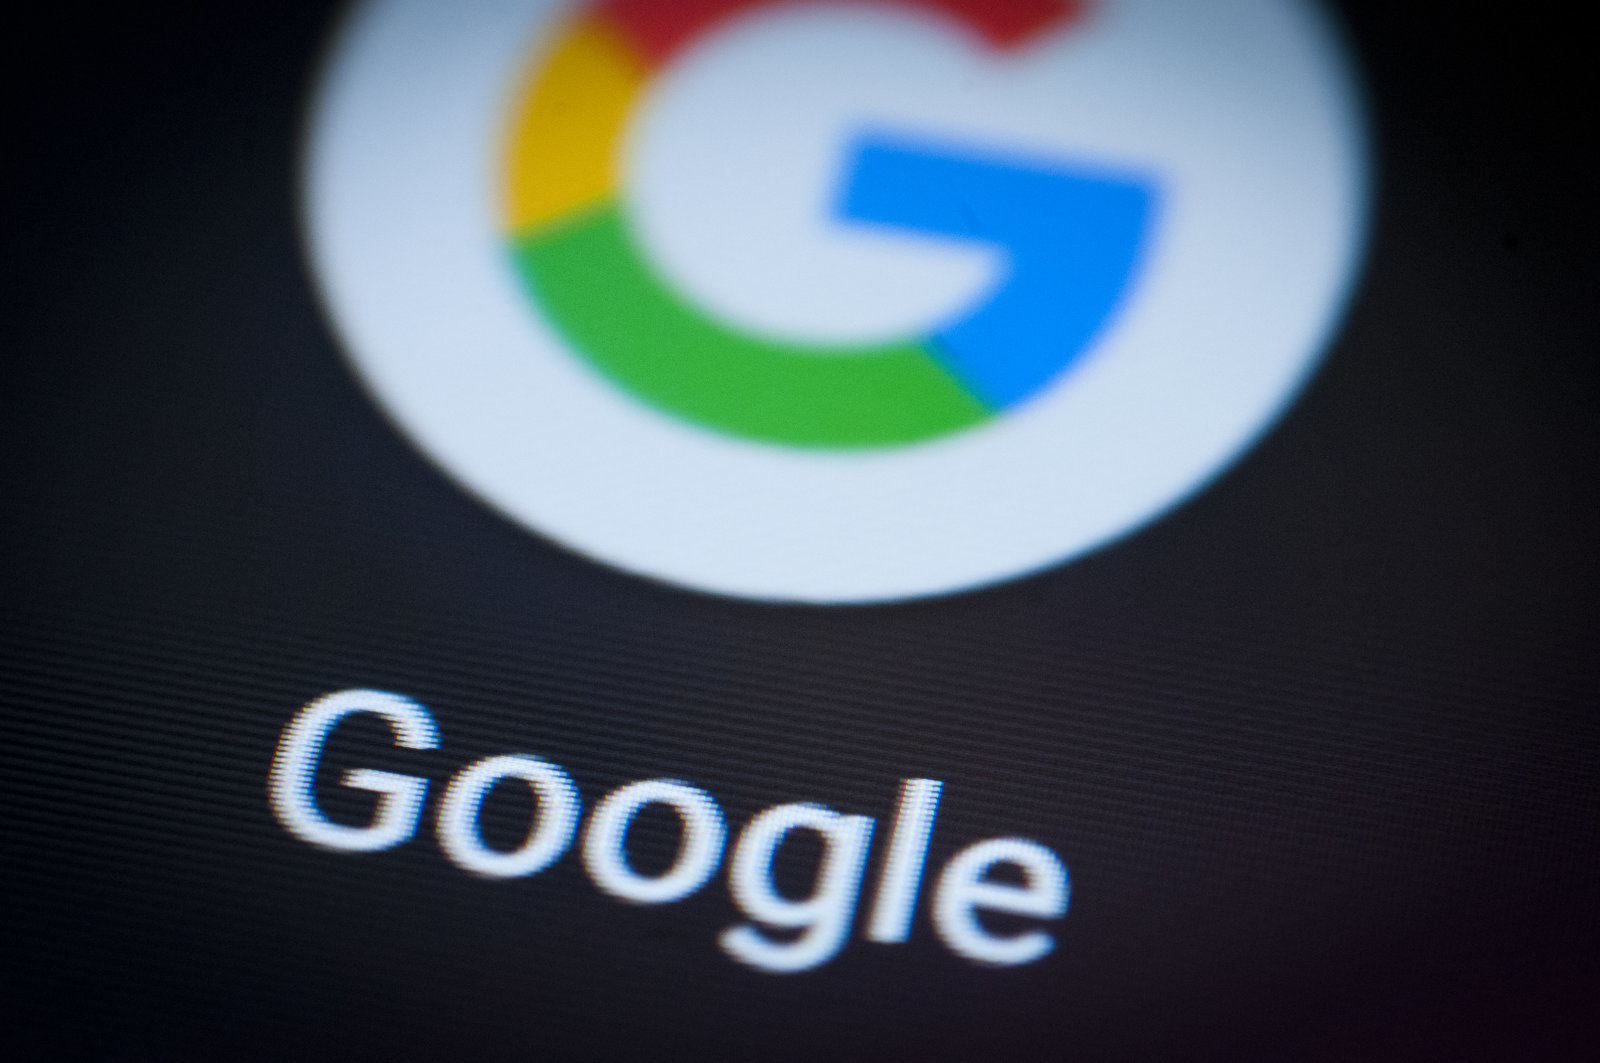 The Google search app is seen on an Android portable device on February 5, 2018. (Photo by Jaap Arriens/NurPhoto via Getty Images)